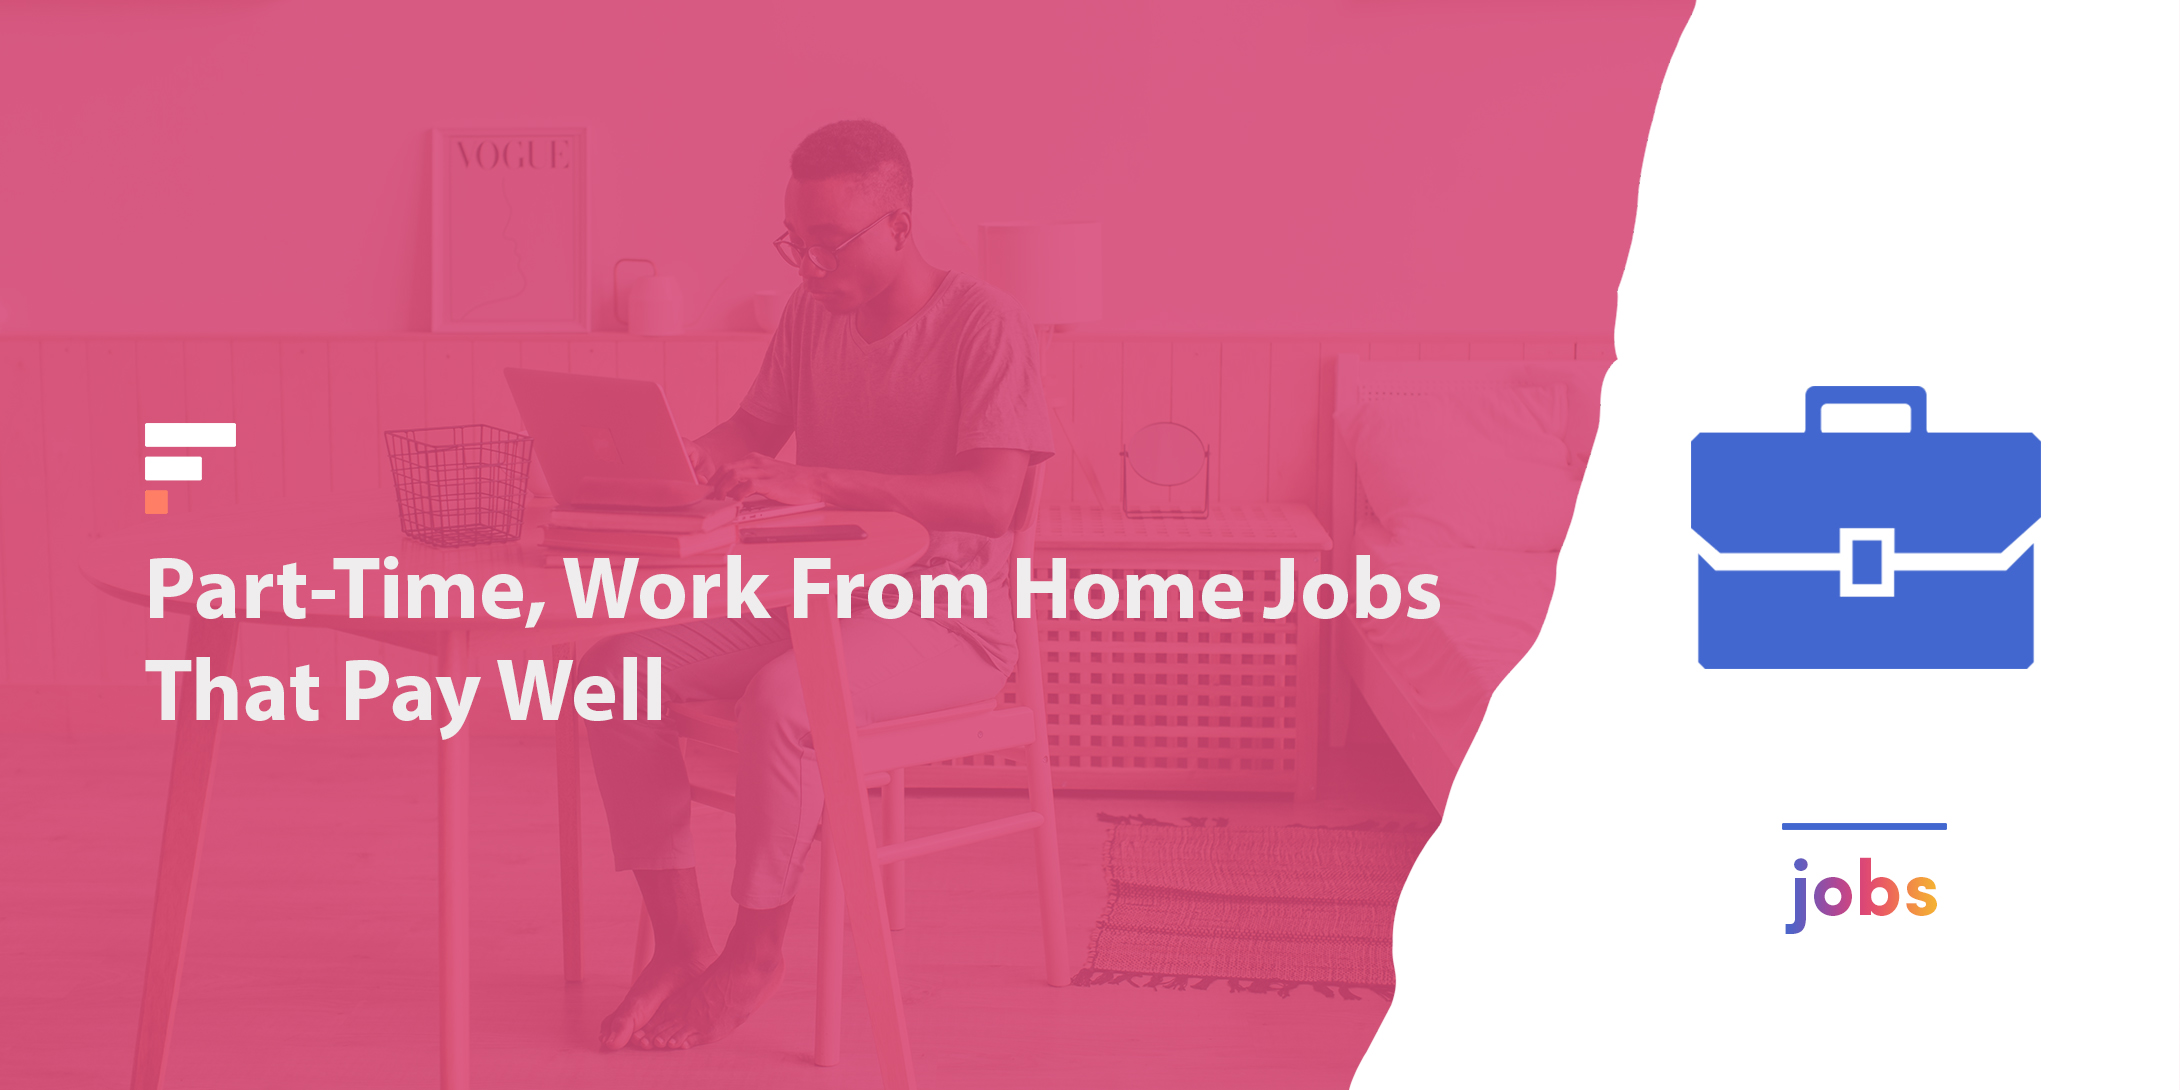 Best part-time work from home jobs